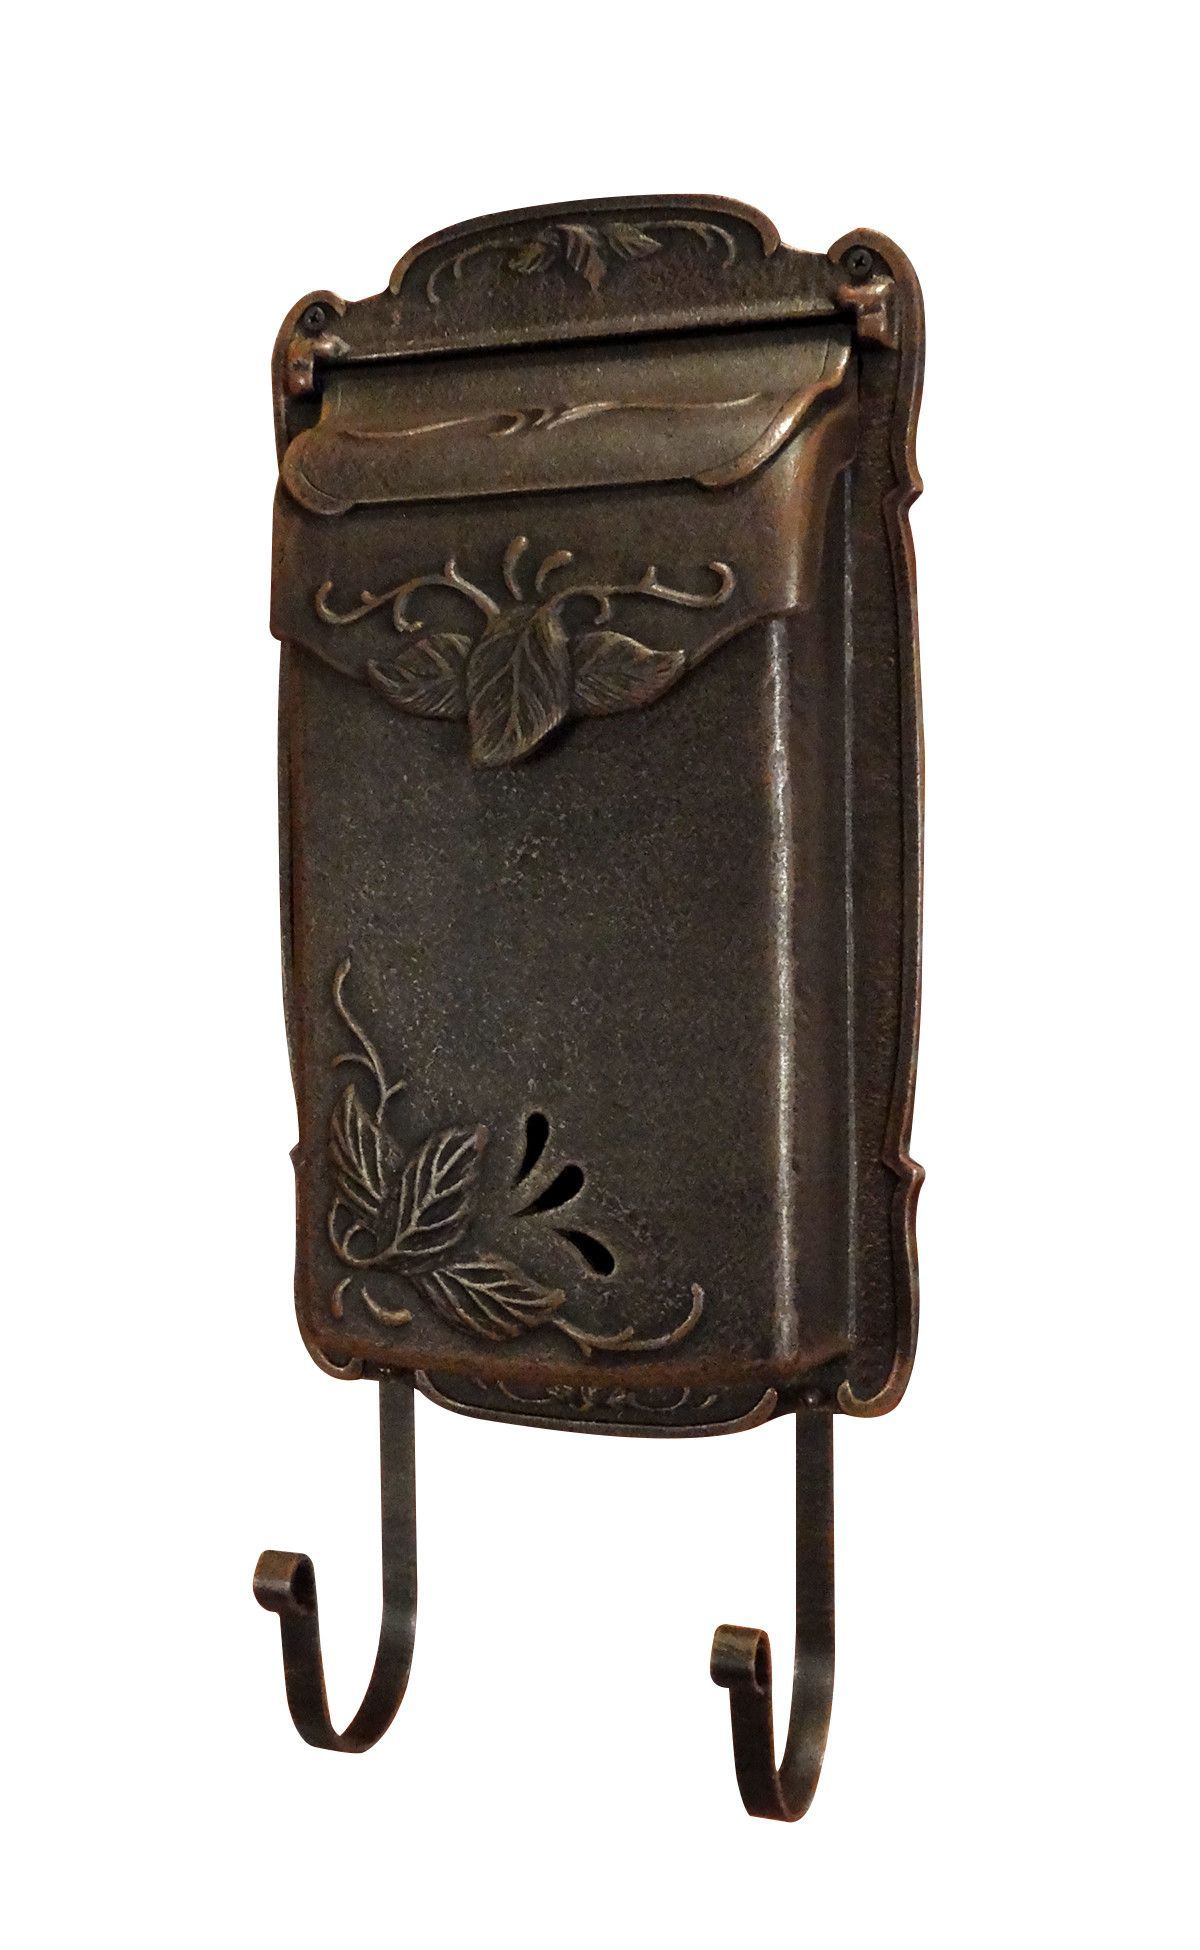 Lacordaire Wall Mounted Mailbox With Regard To Widely Used Floral Vertical Wall Mounted Mailbox (View 13 of 20)